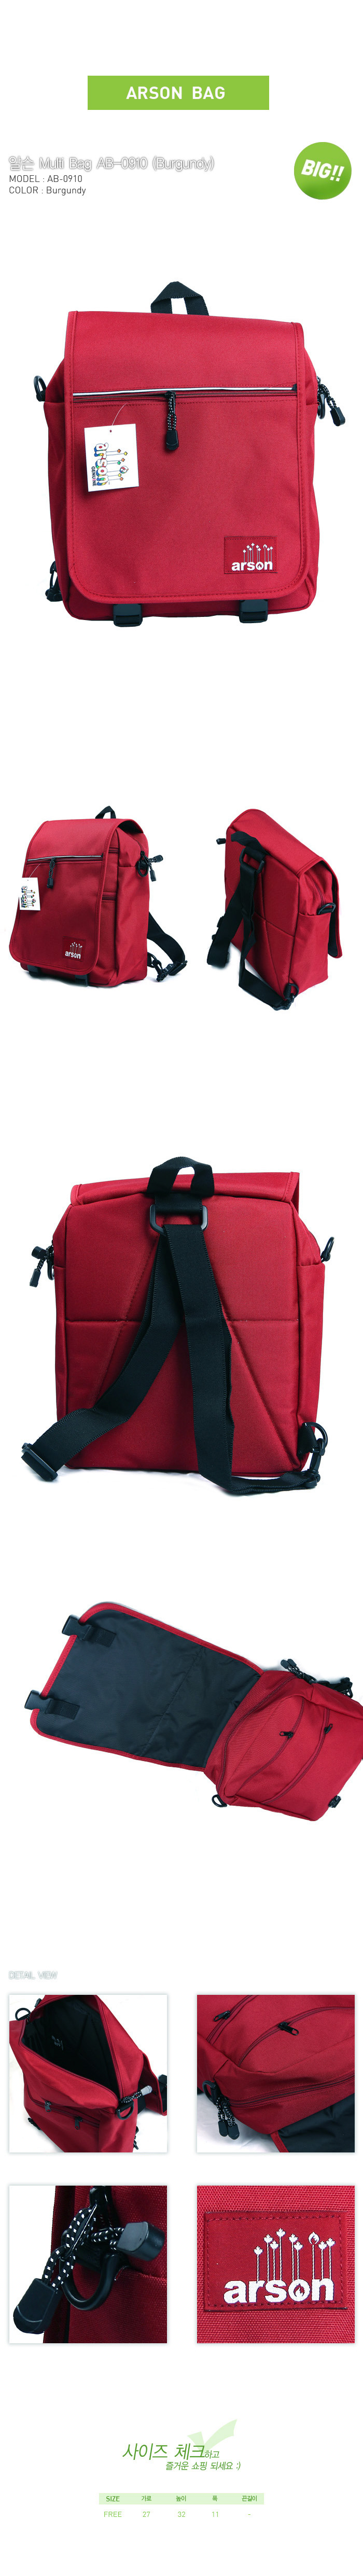 [ ARSON ] AB-0910 (Burgundy)/Backpack School Cross Bag